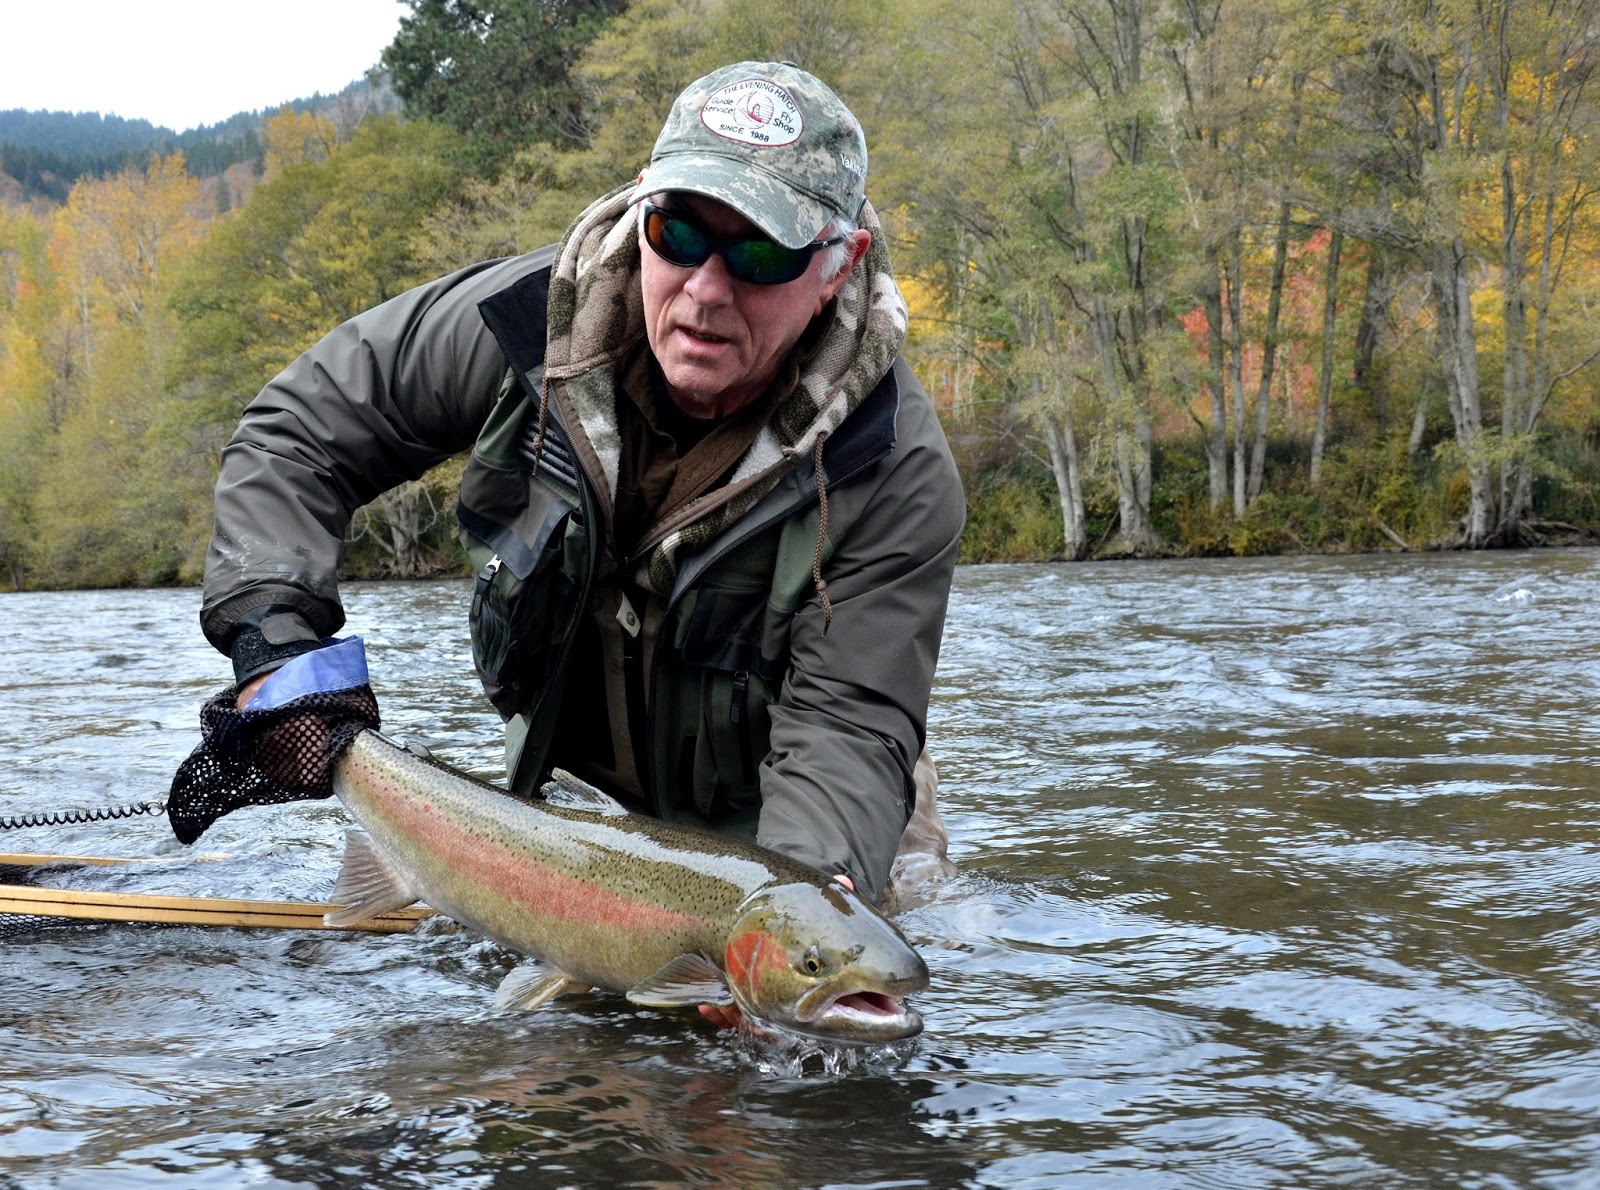 The evening hatch reports klickitat river report 11 2 16 for Klickitat river fishing report